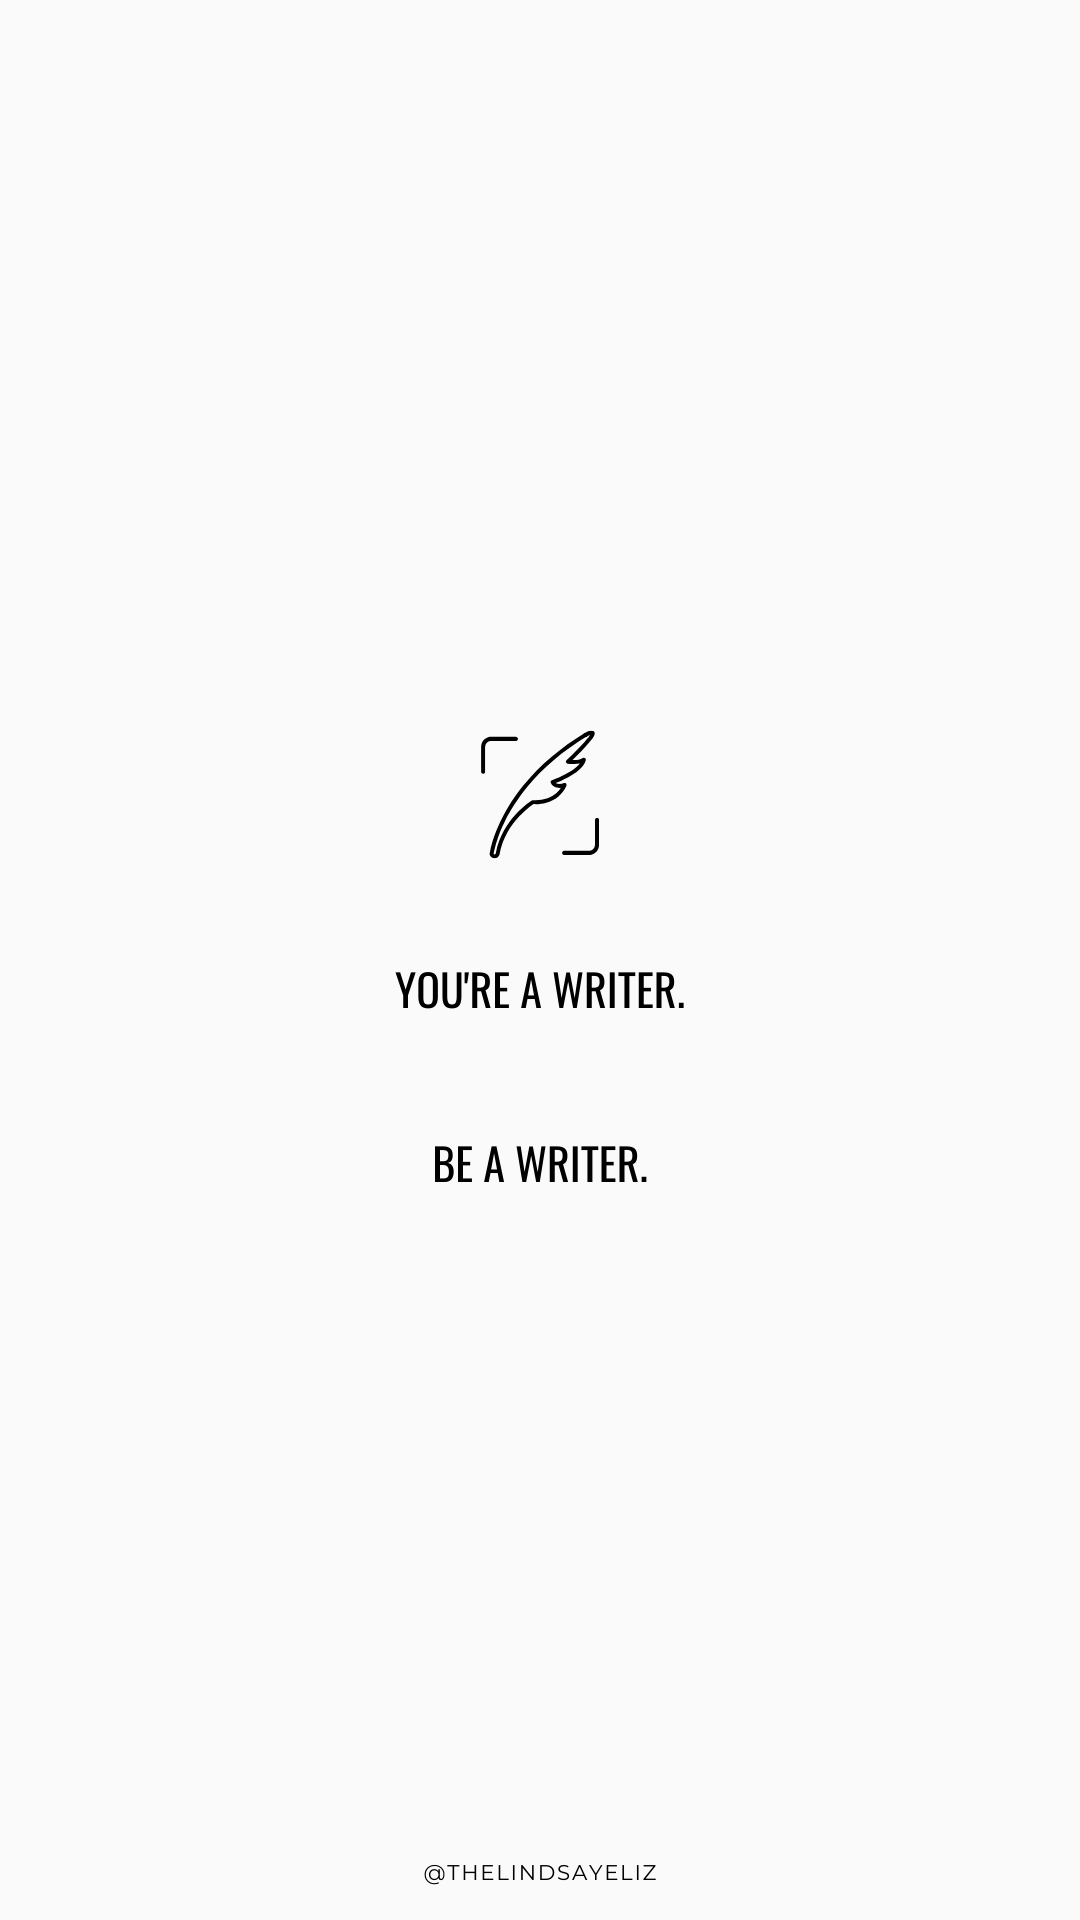 Free phone wallpapers for writers to keep you inspired and motivated to work on your WIP.